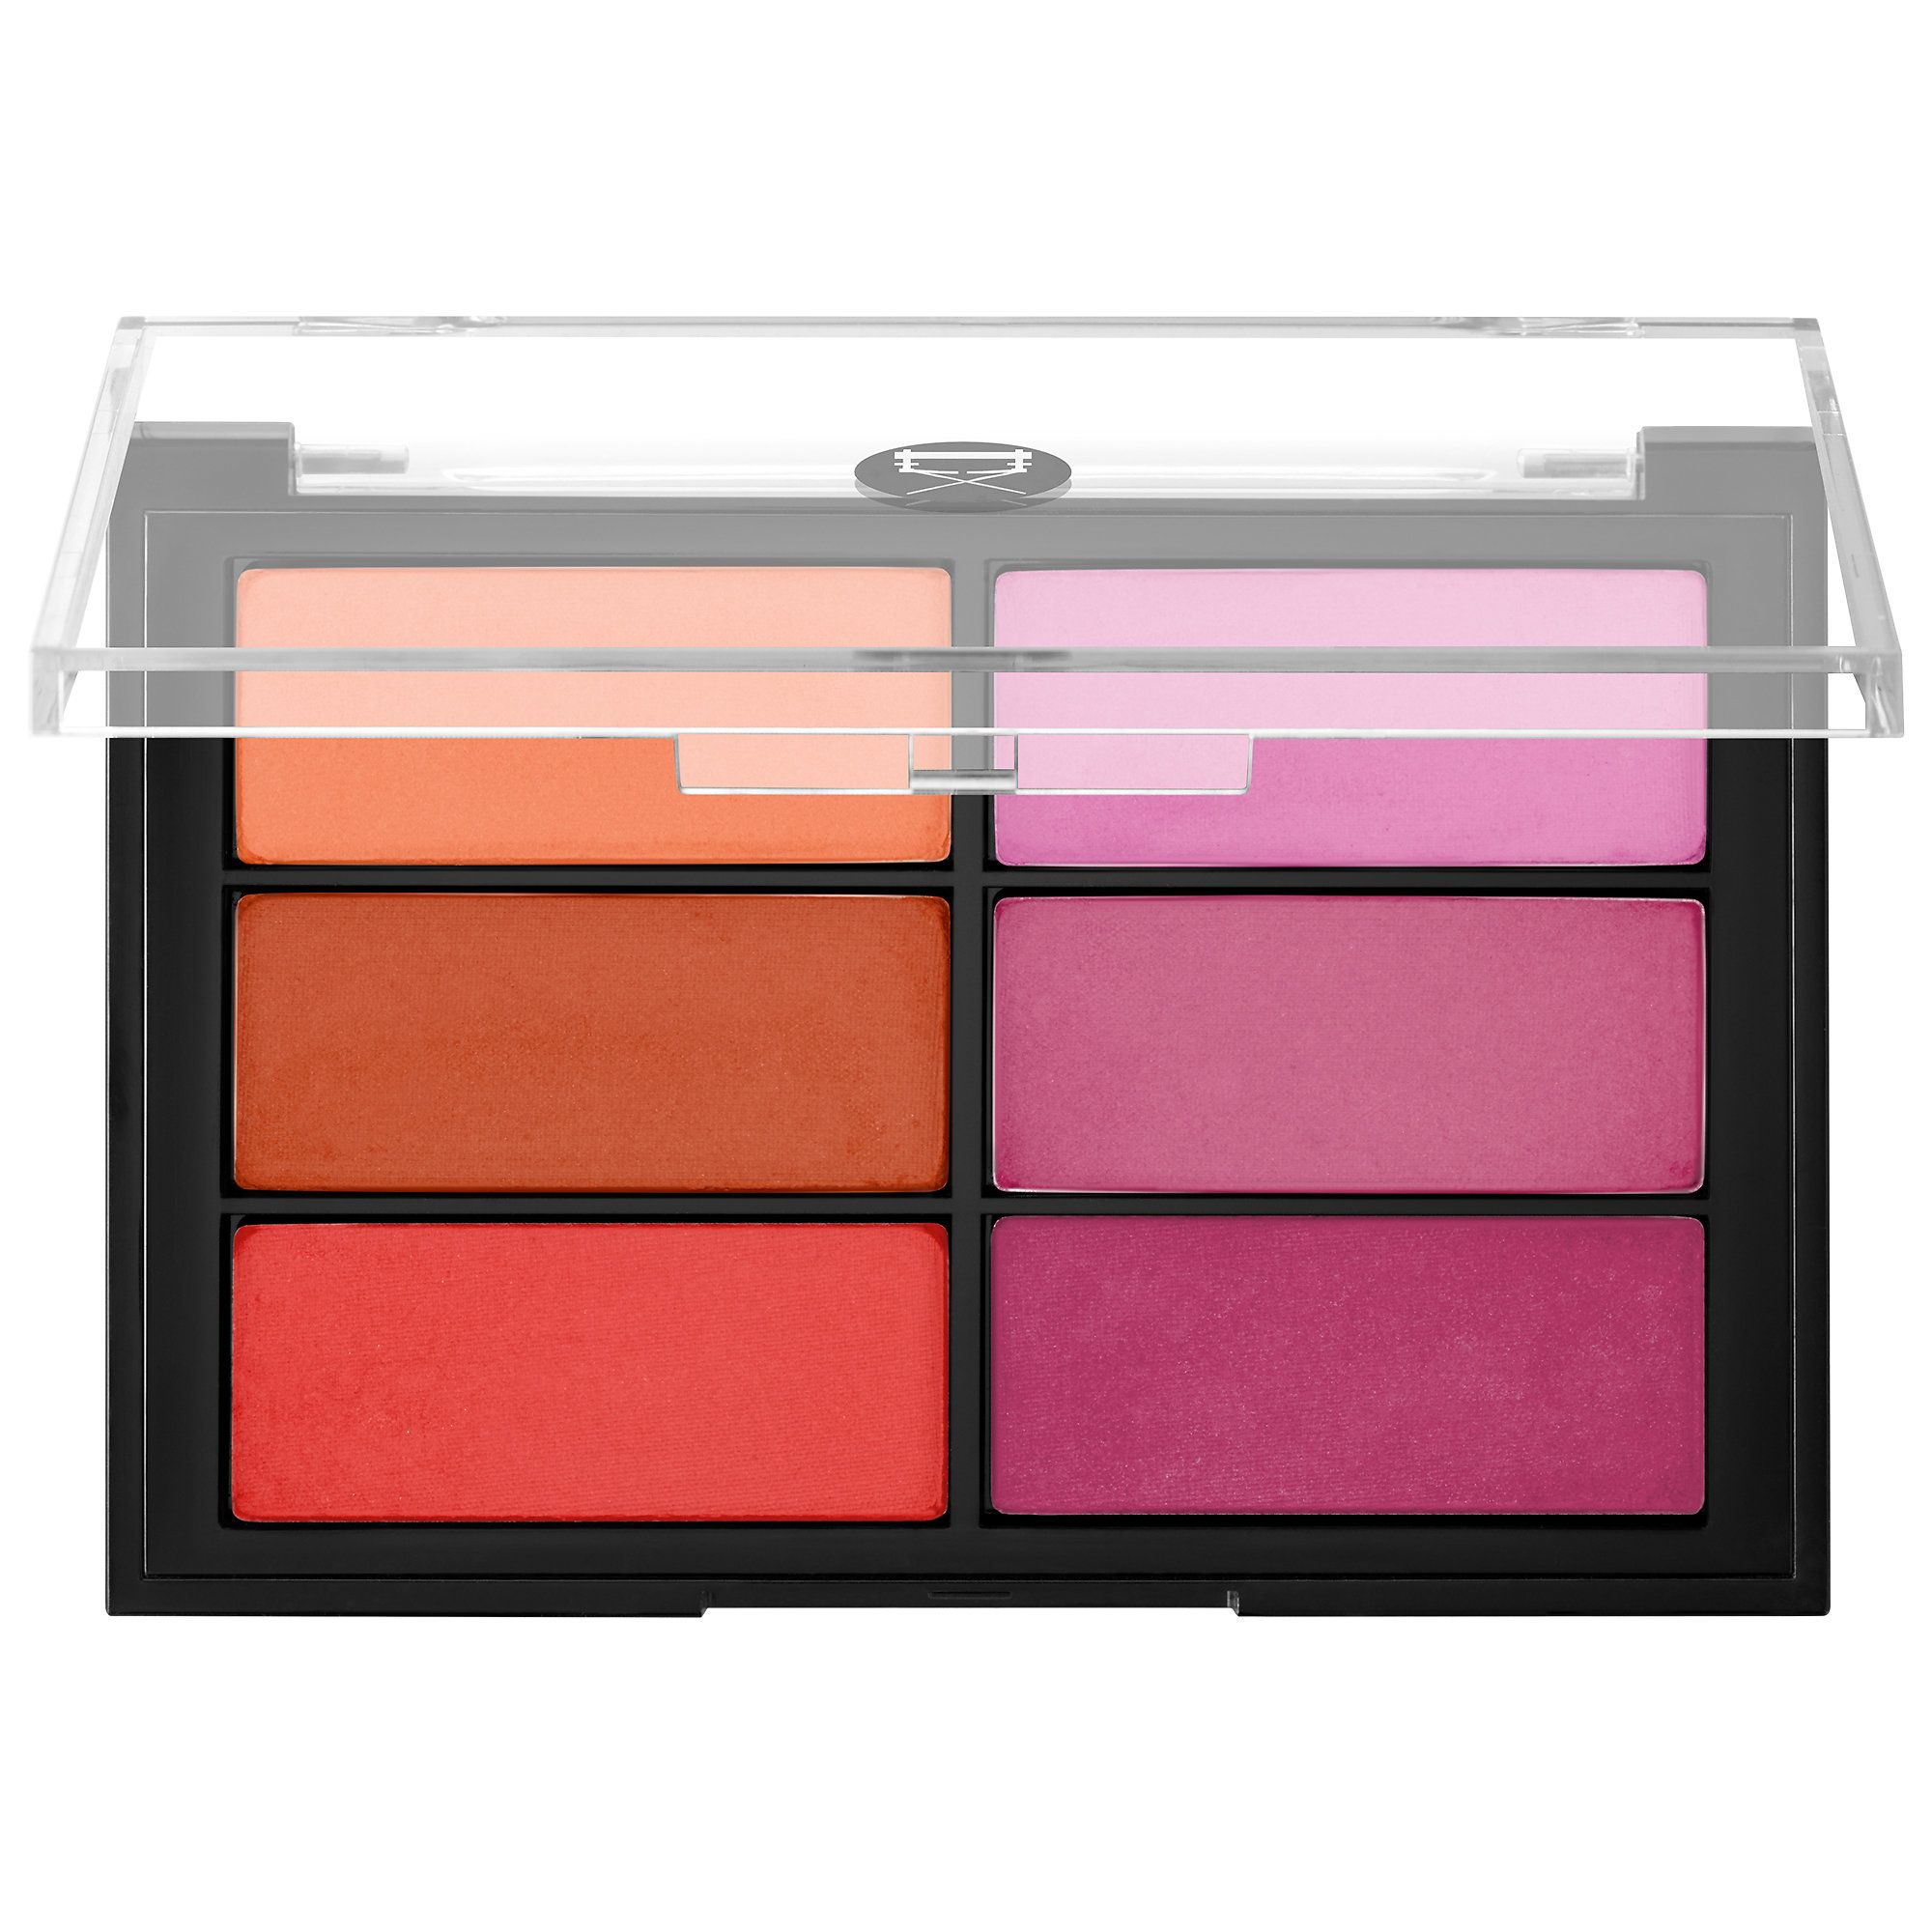 09f3d886b51 Shop Viseart s Blush Palette at Sephora. This palette features six shades  in dramatic plum and